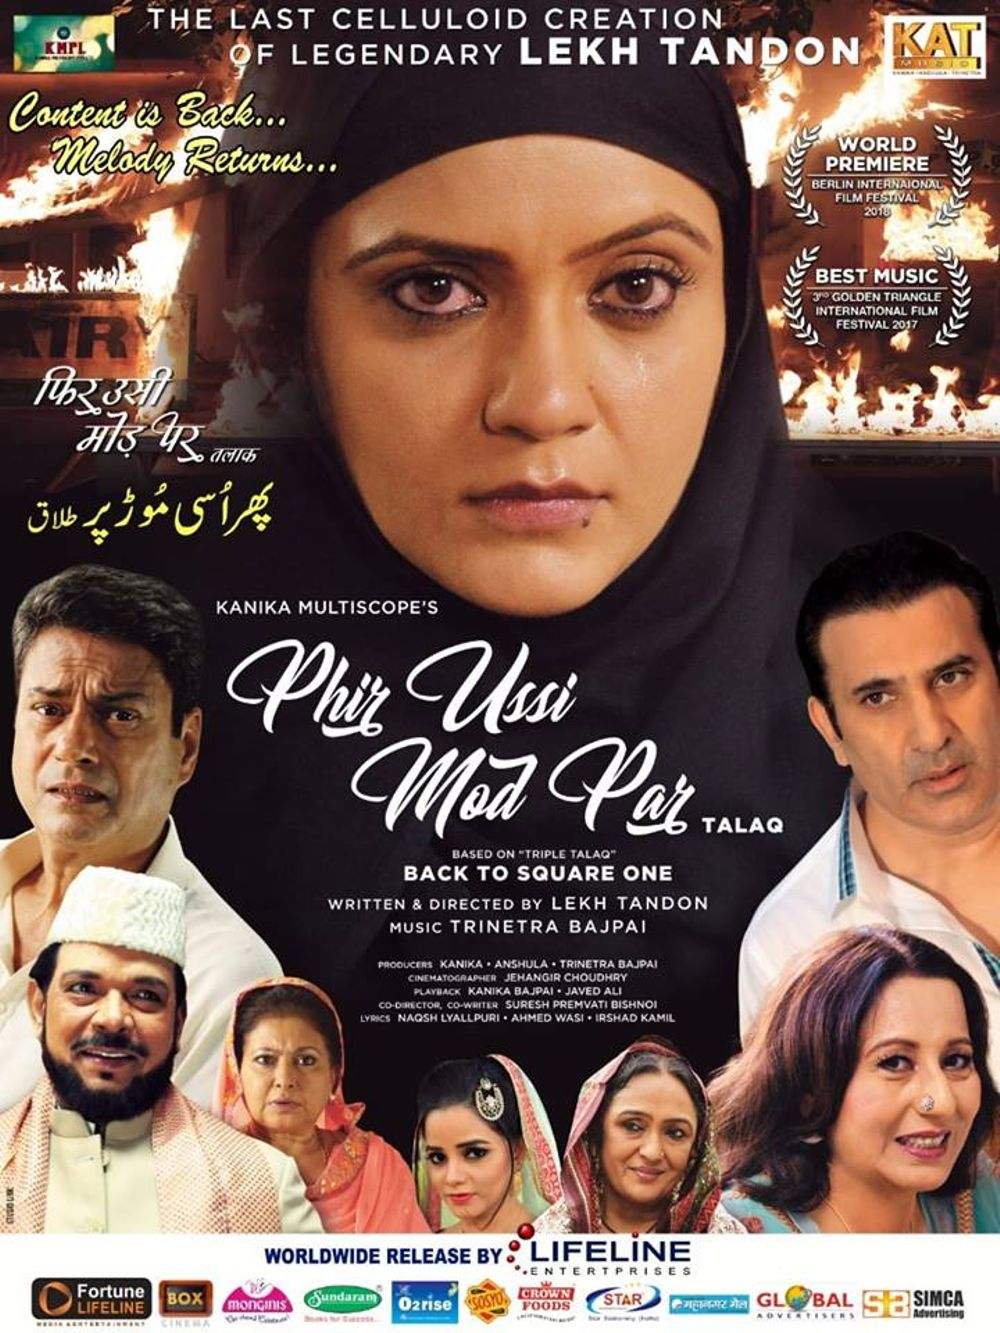 Phir Ussi Mod Par Talaq Movie Review Hindi Movie Review